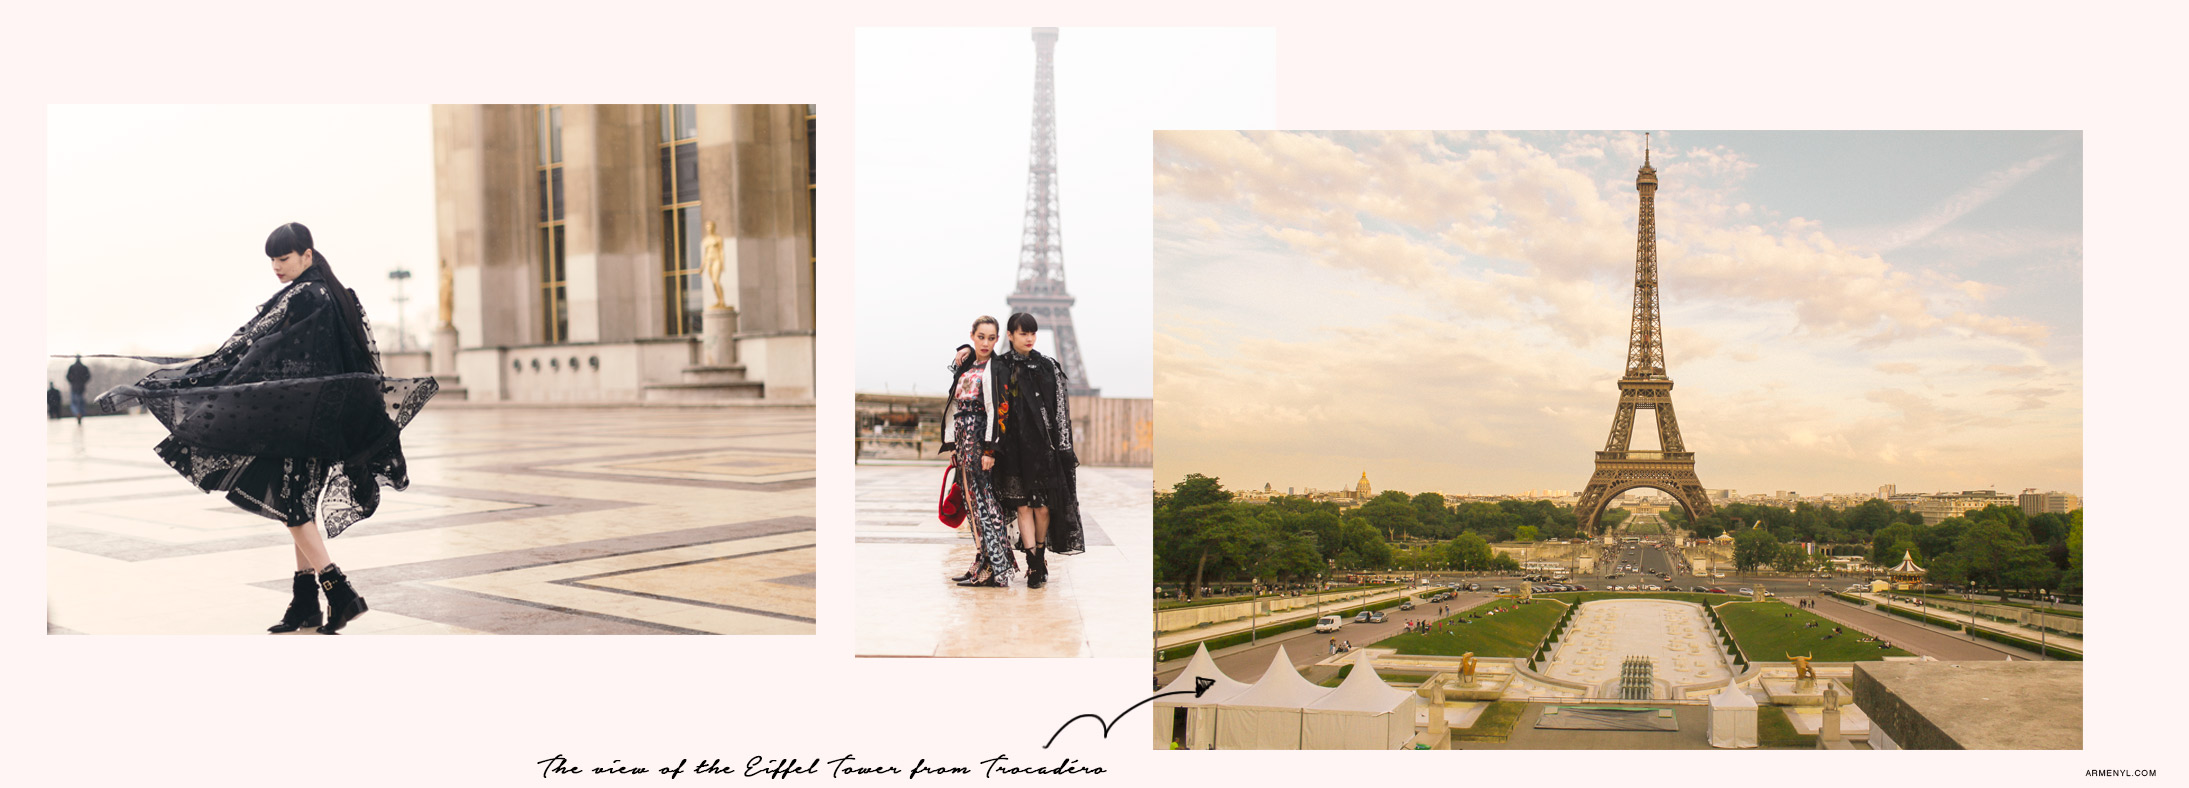 The best places to photograph the Eiffel Tower in Paris by Armenyl.com